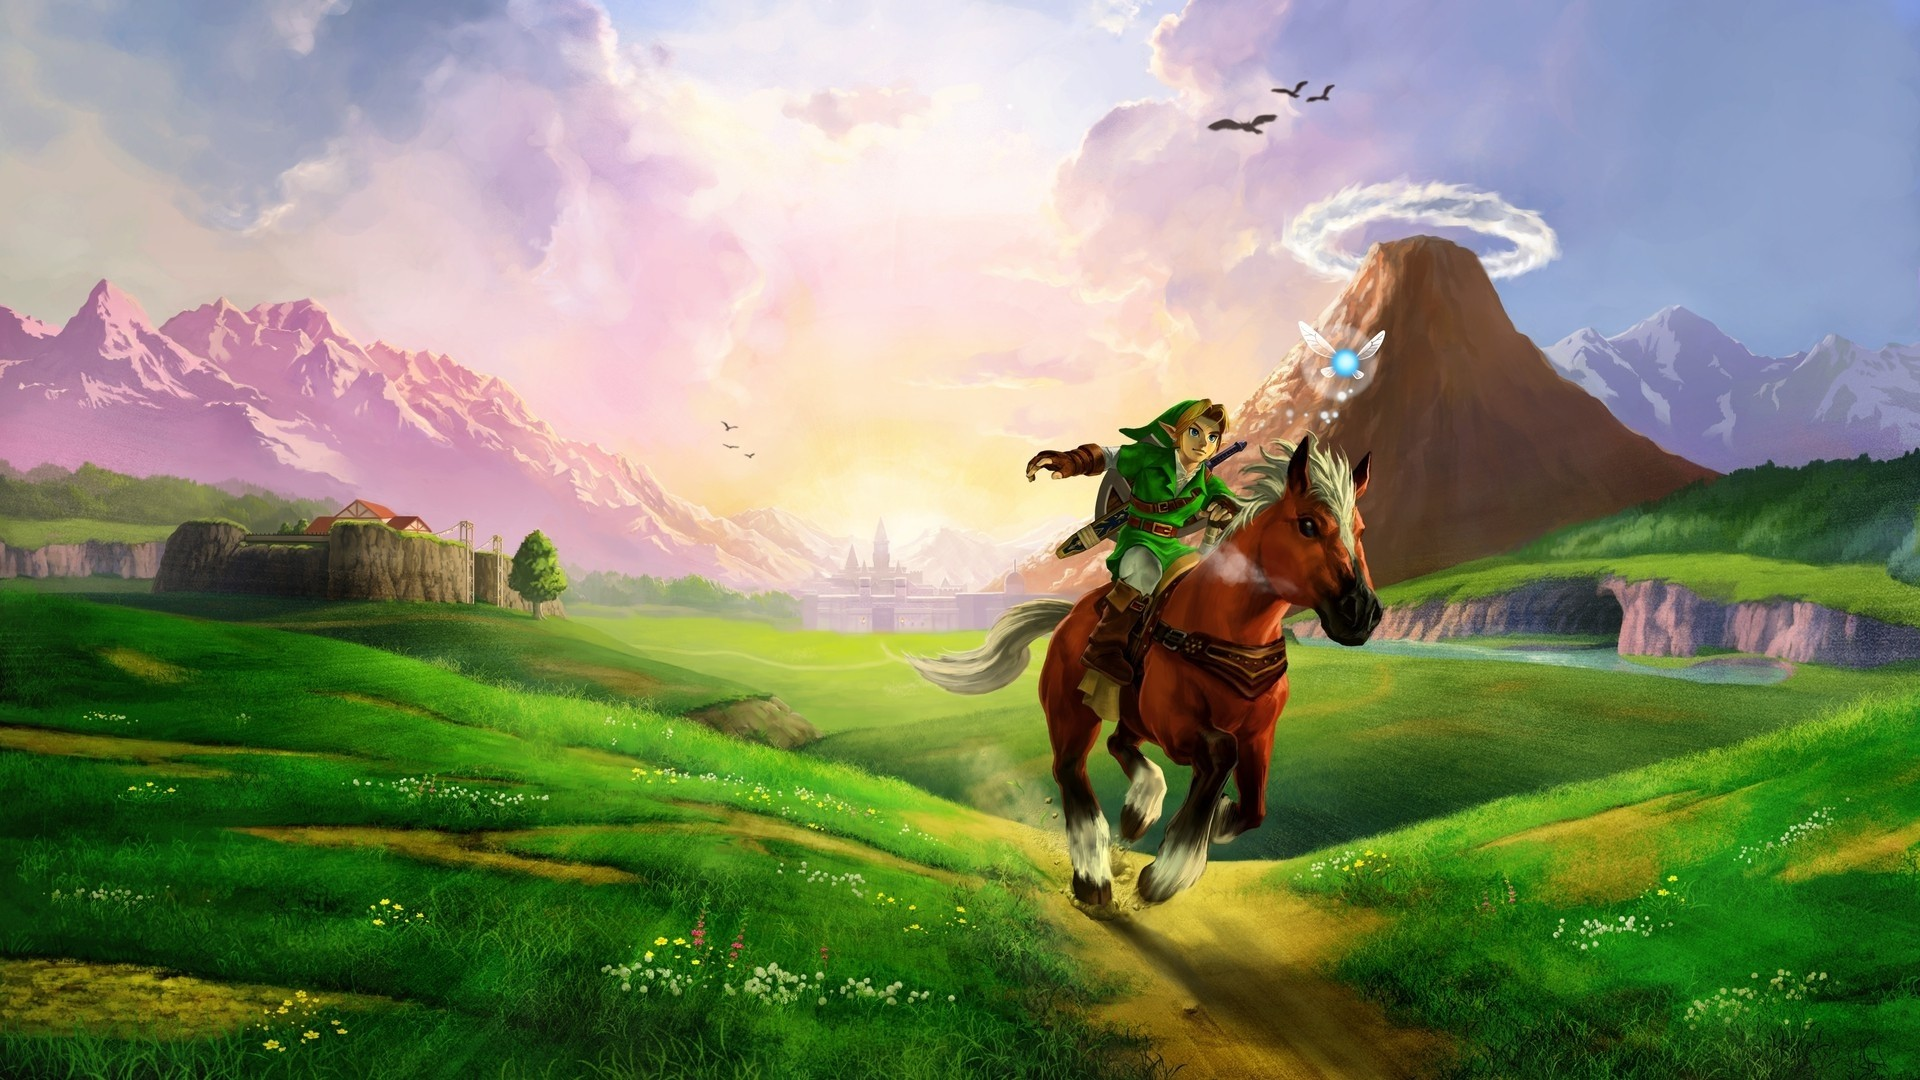 The Legend Of Zelda Wallpaper Download Free Amazing Hd